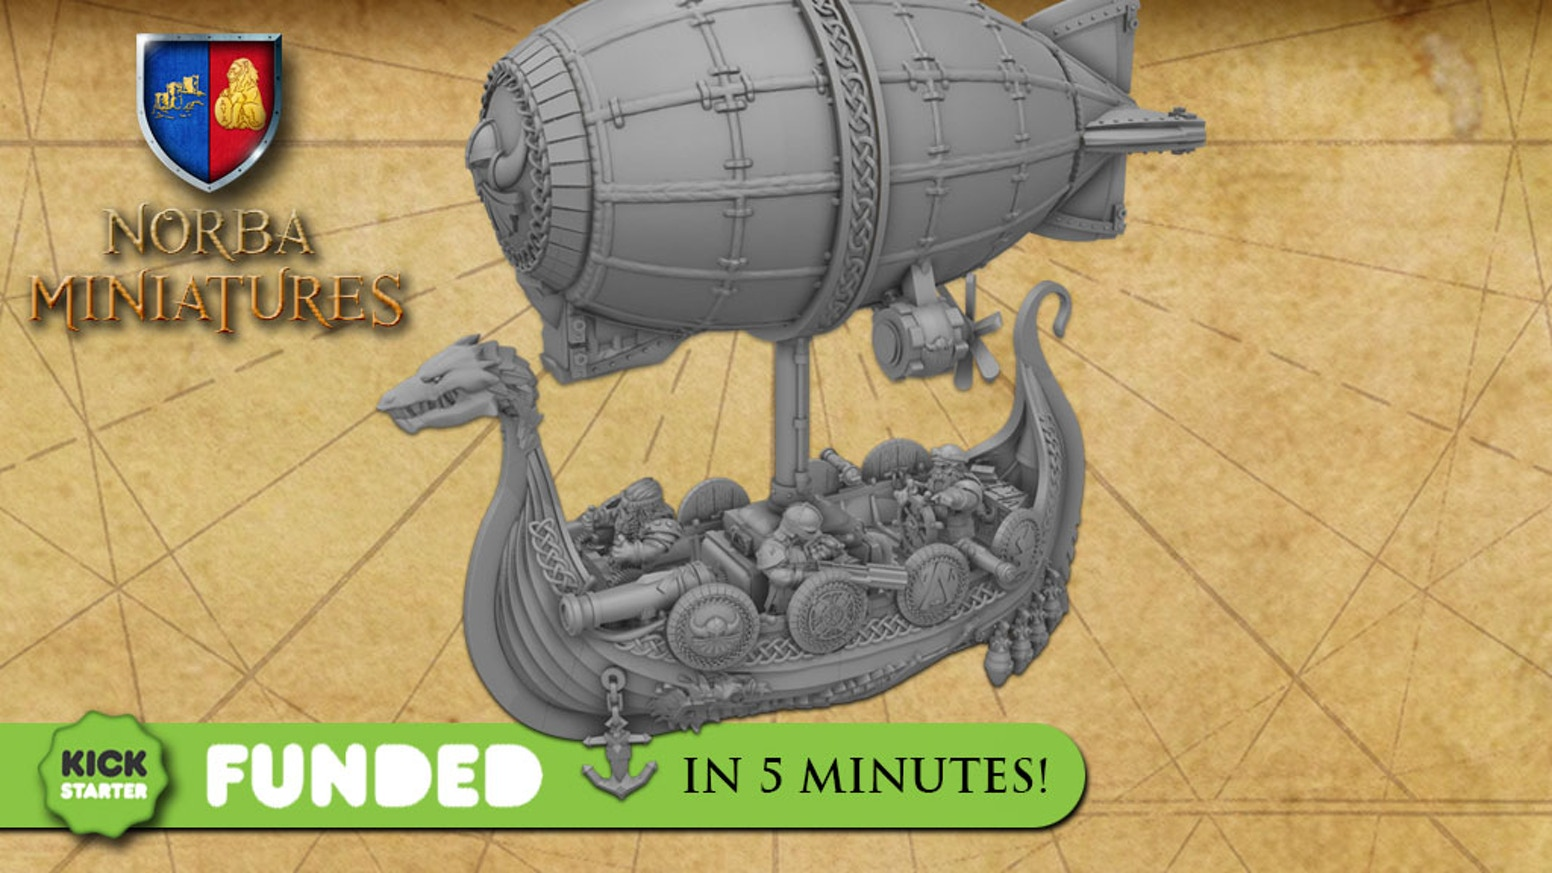 Miniature dwarf zeppelin for wargames or collecting to use in your boardgames. Best miniature prices for your tabletop games.